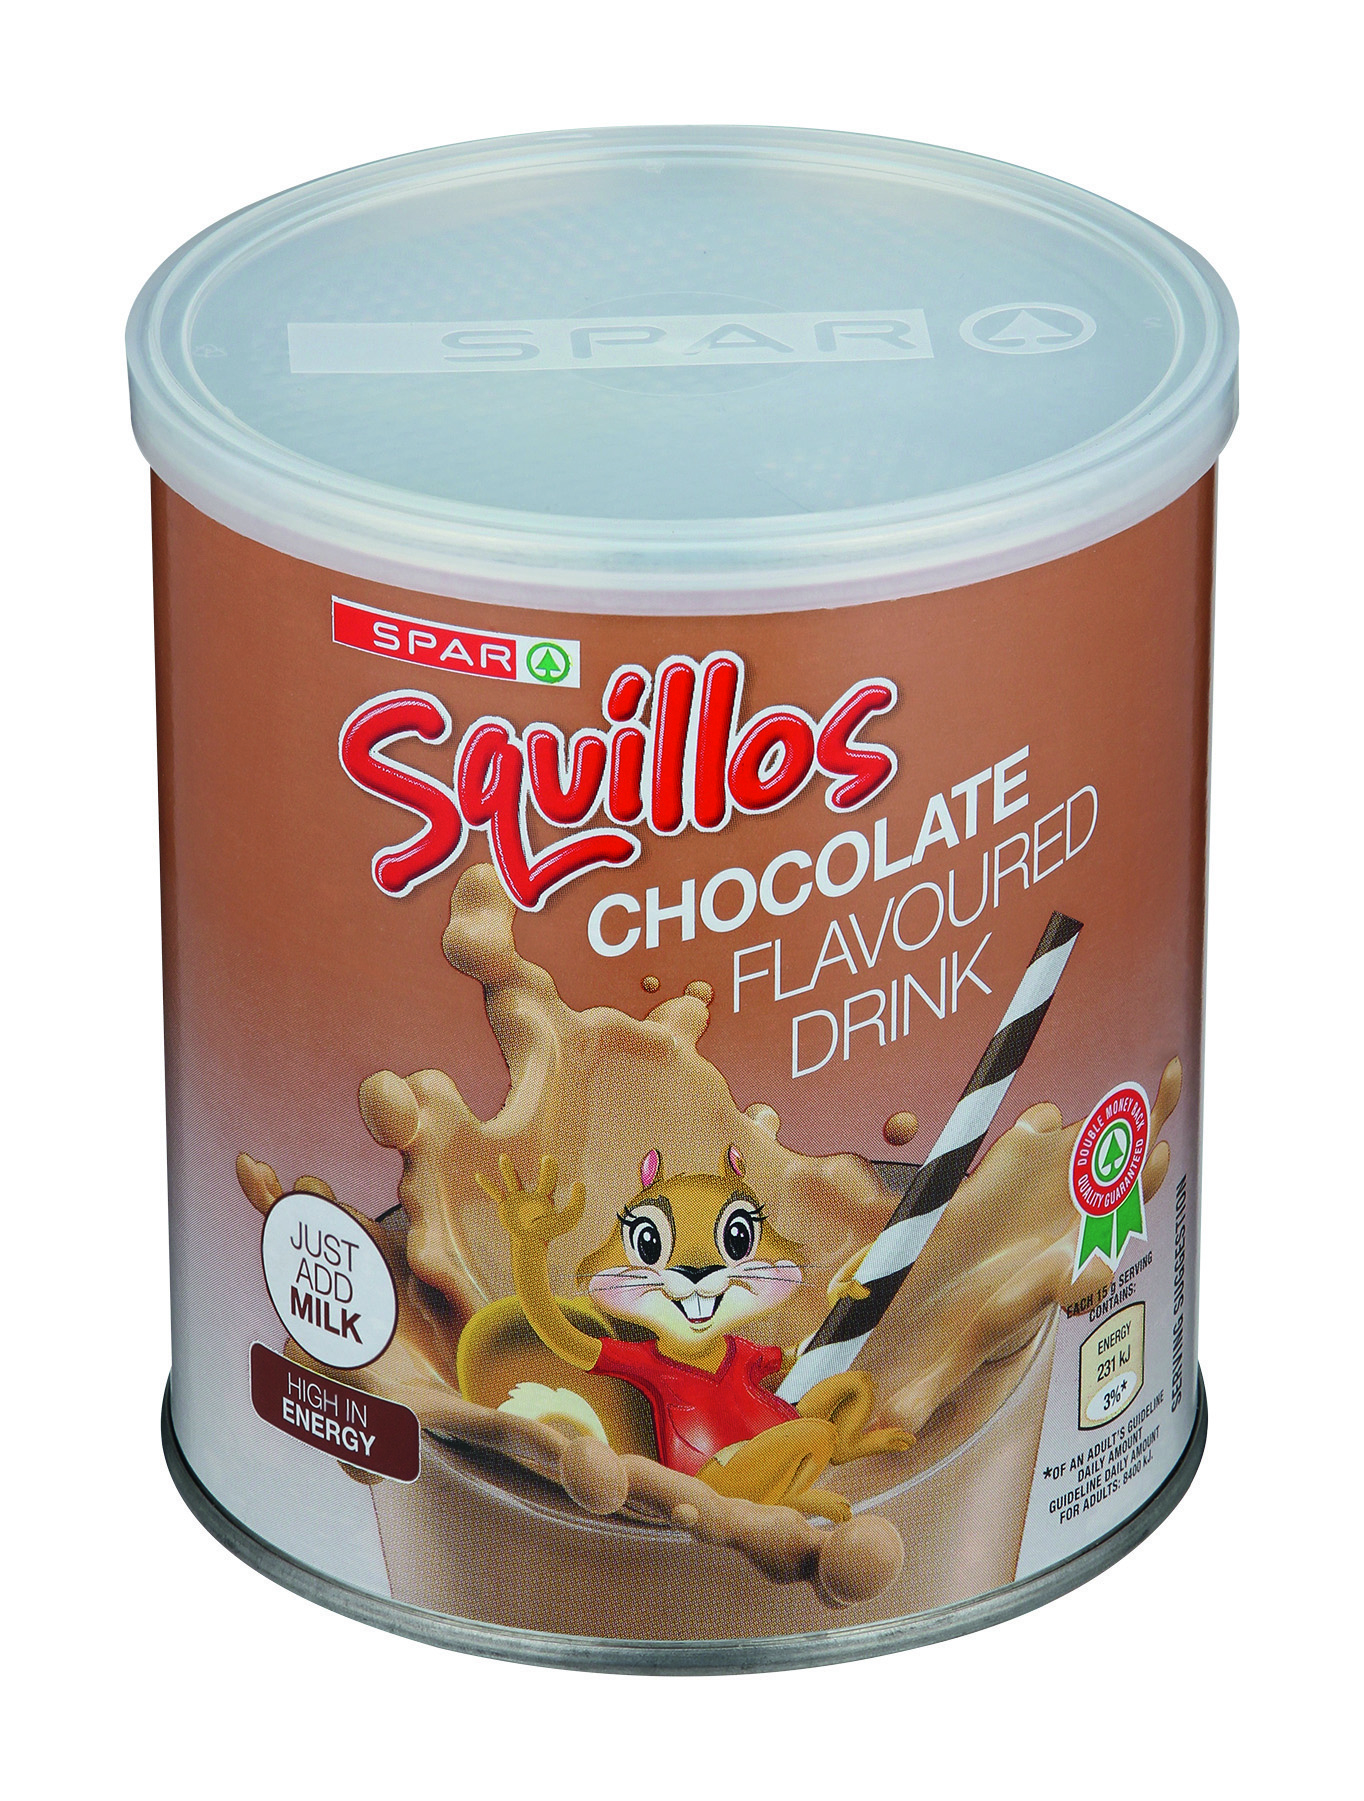 squillos milk modifier chocolate